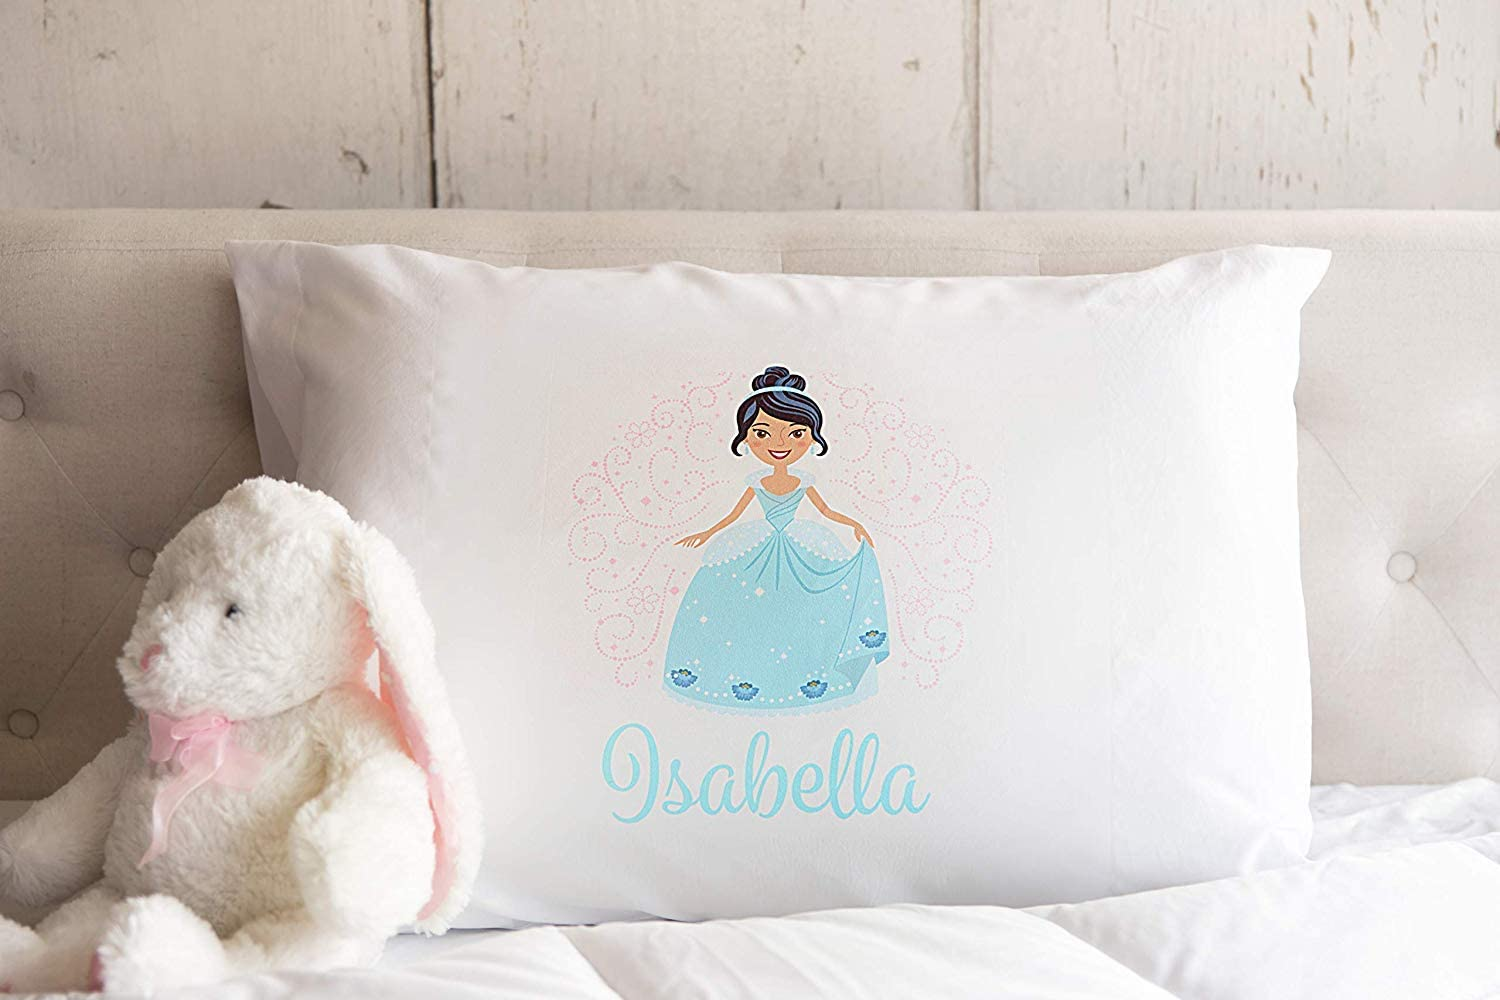 Qualtry Personalized Gifts for Toddler Kids, Boys and Girls (Princess Isabella Design) - Unique Customized Pillow Cases, Standard Size 21